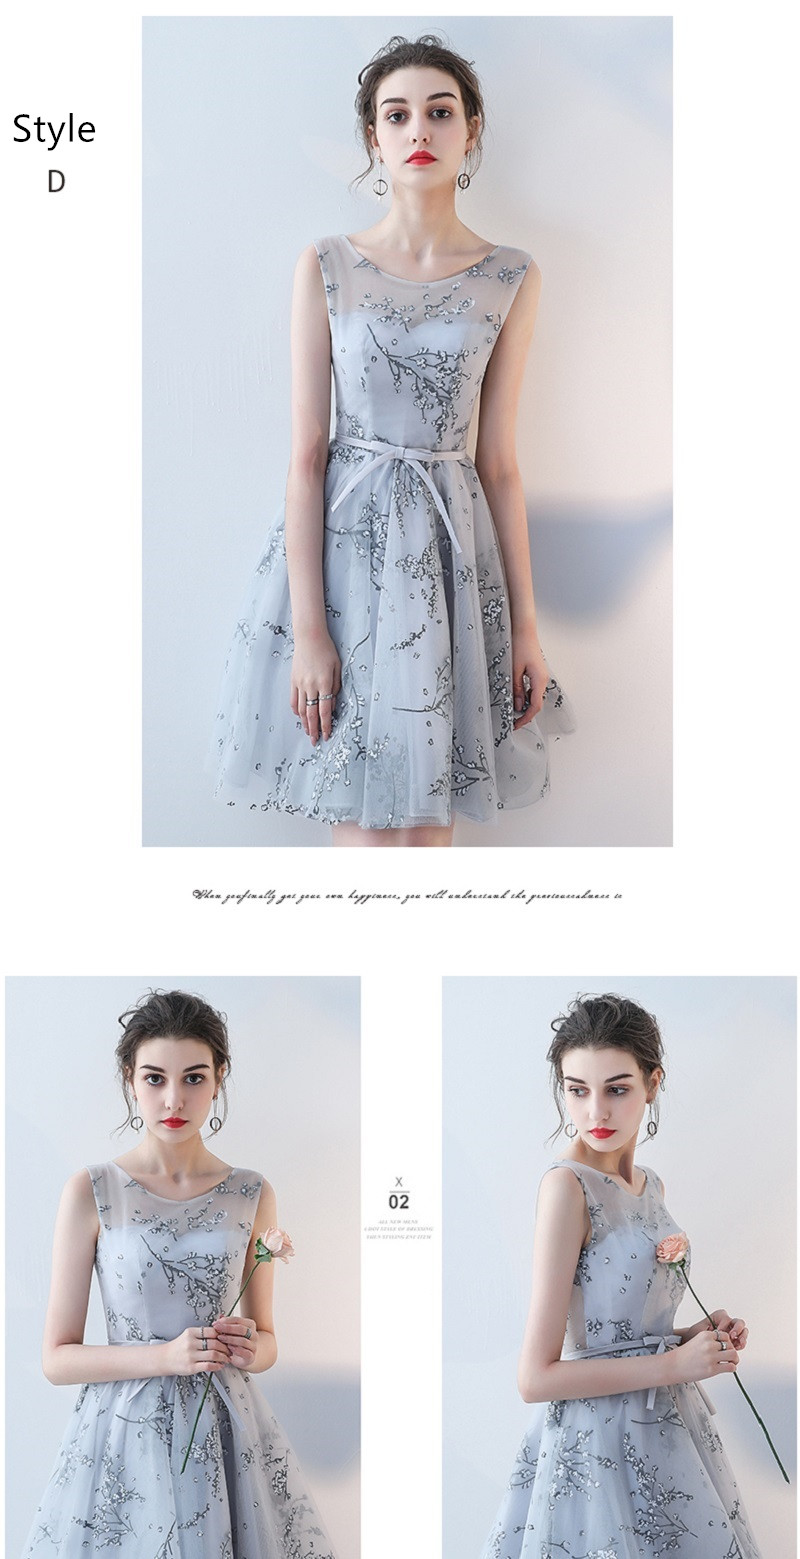 Flower Pattern Sashes Lace Knee Length Bridesmaid Dress 11